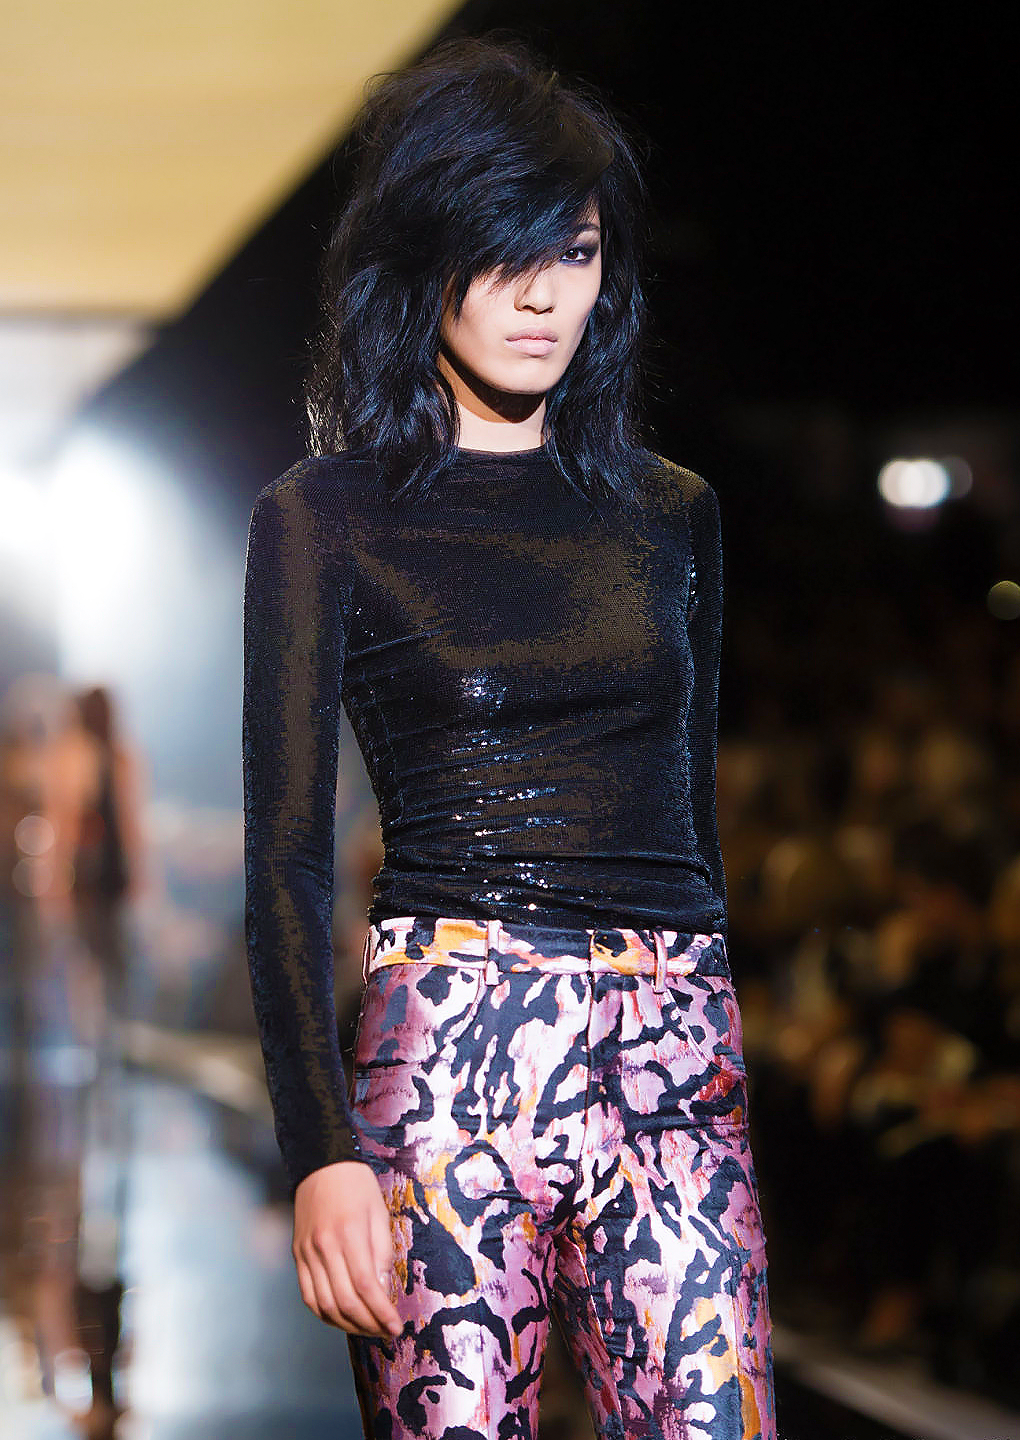 vl4da:  chiharu okunugi @ tom ford ss 2015  this is like the outfit to end all outfits for me